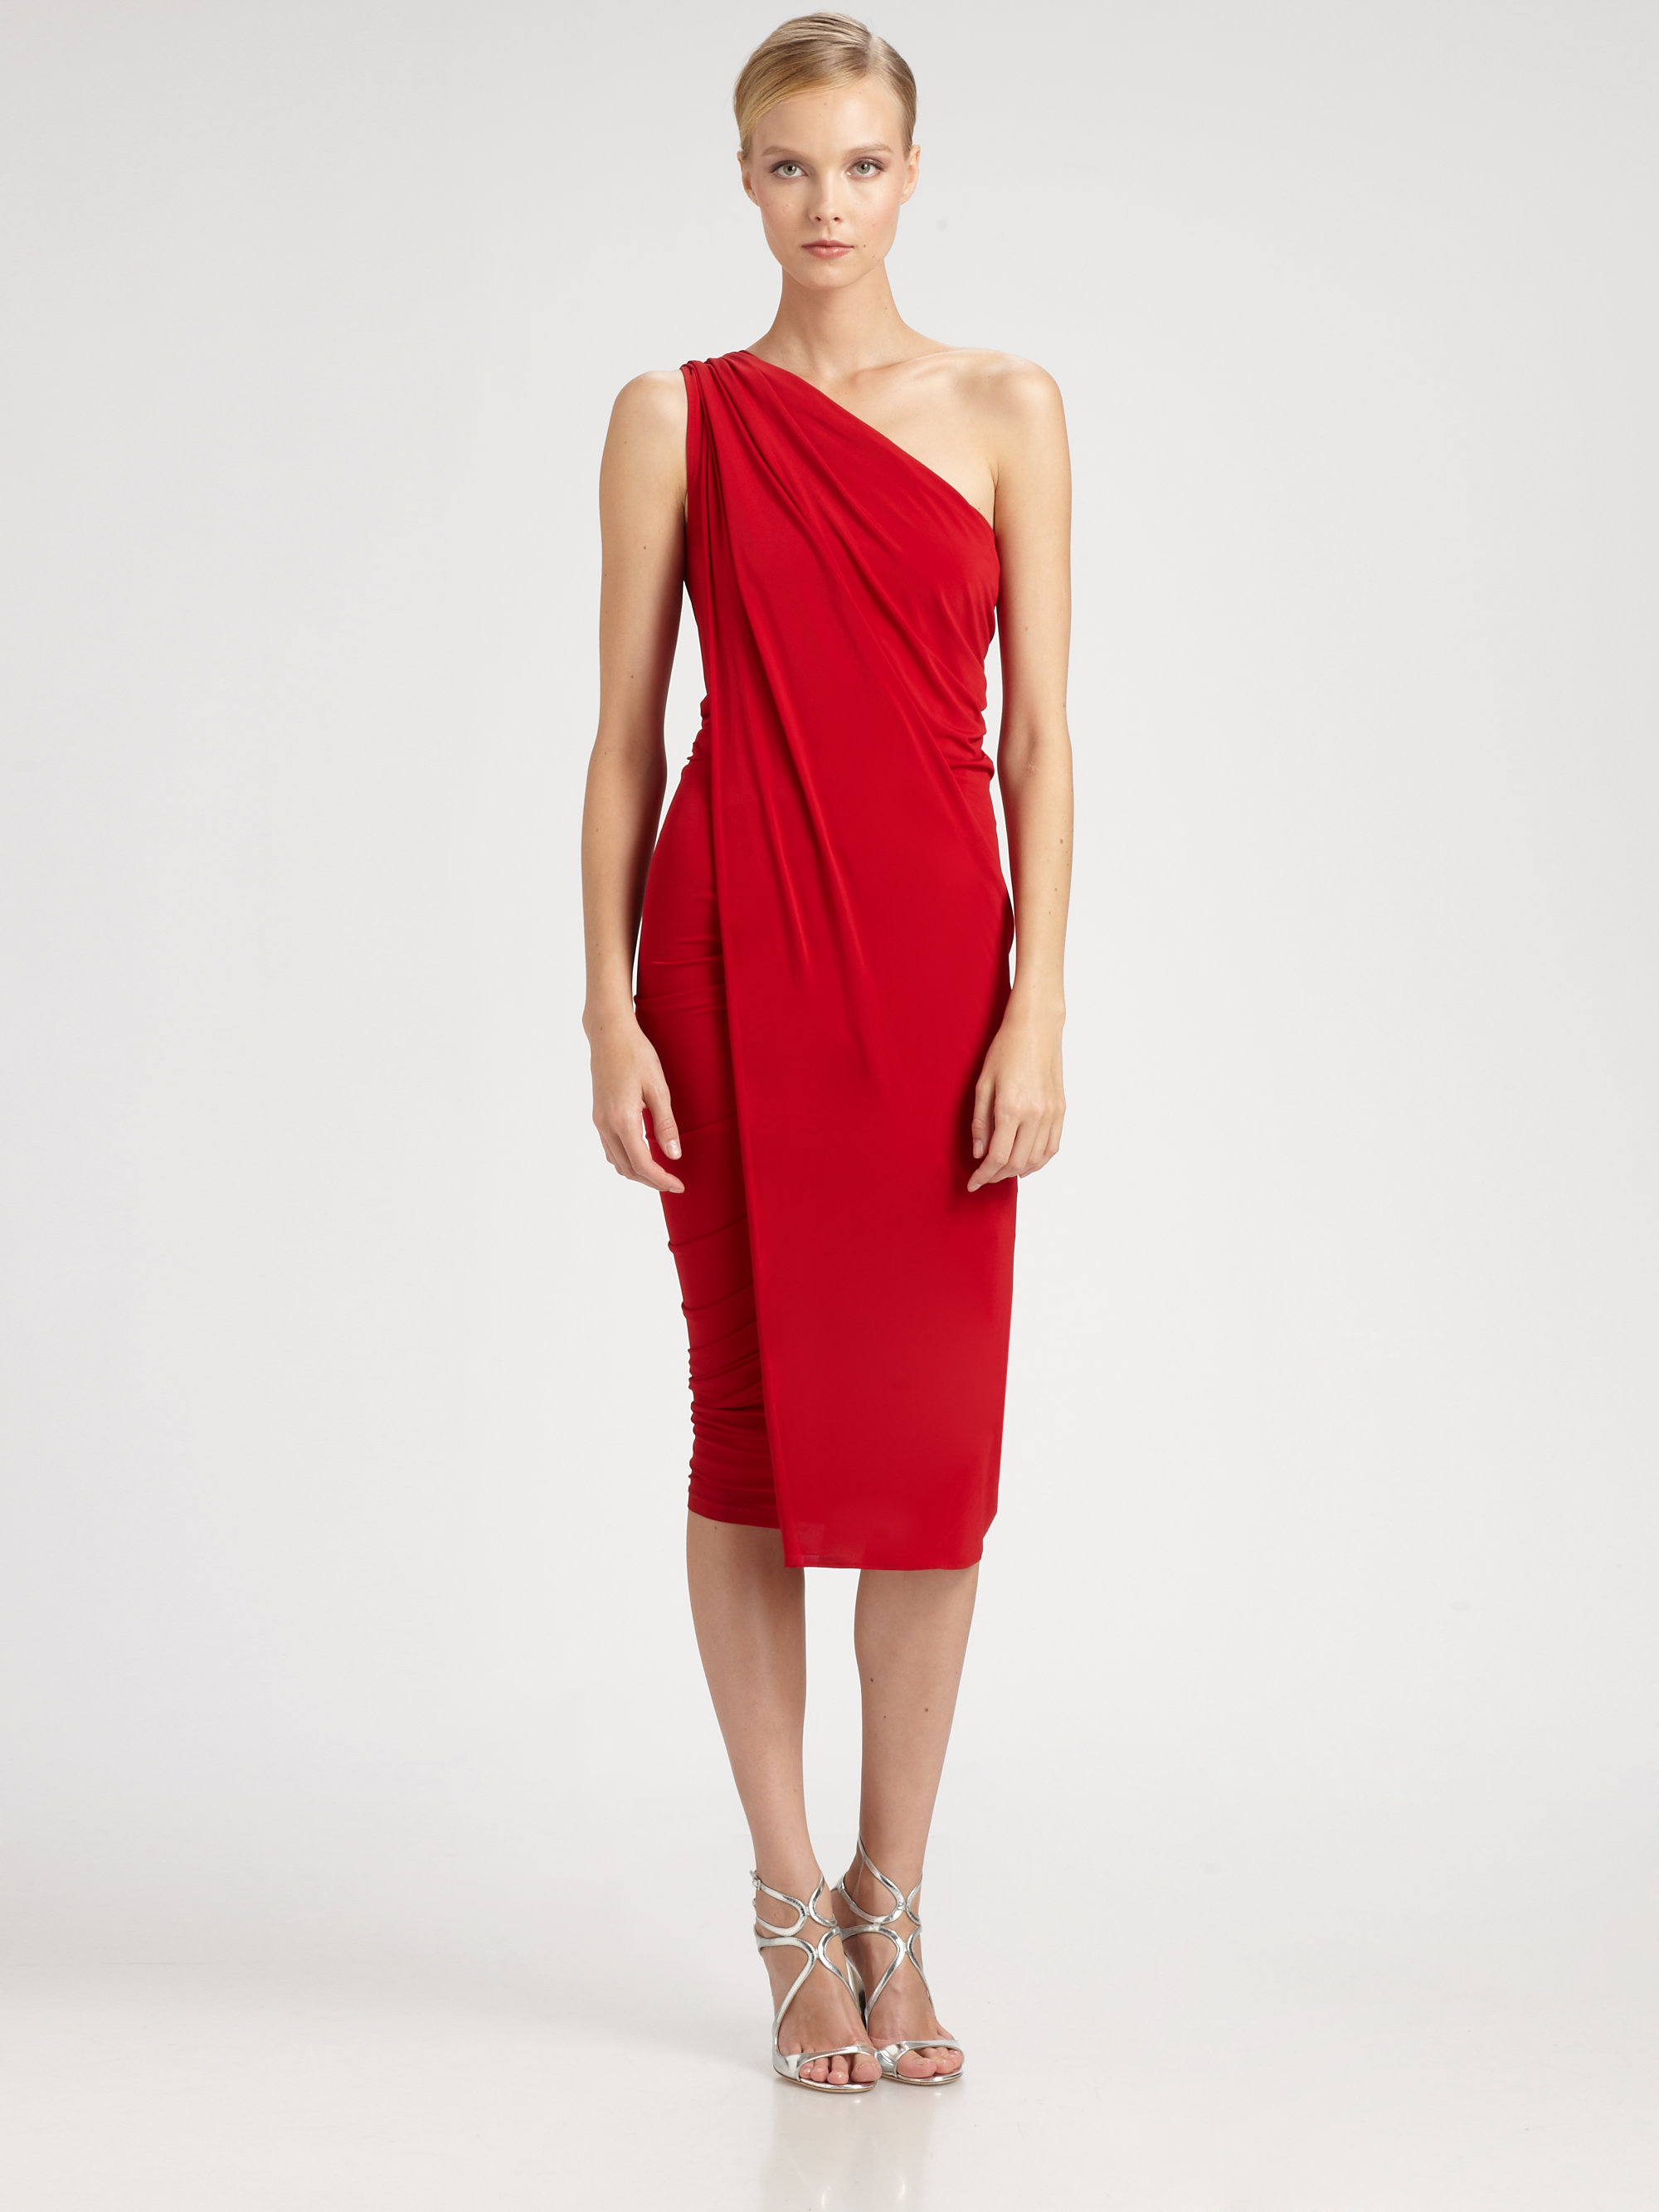 Donna karan new york asymmetrical dress in lipstick red for Donna karen new york